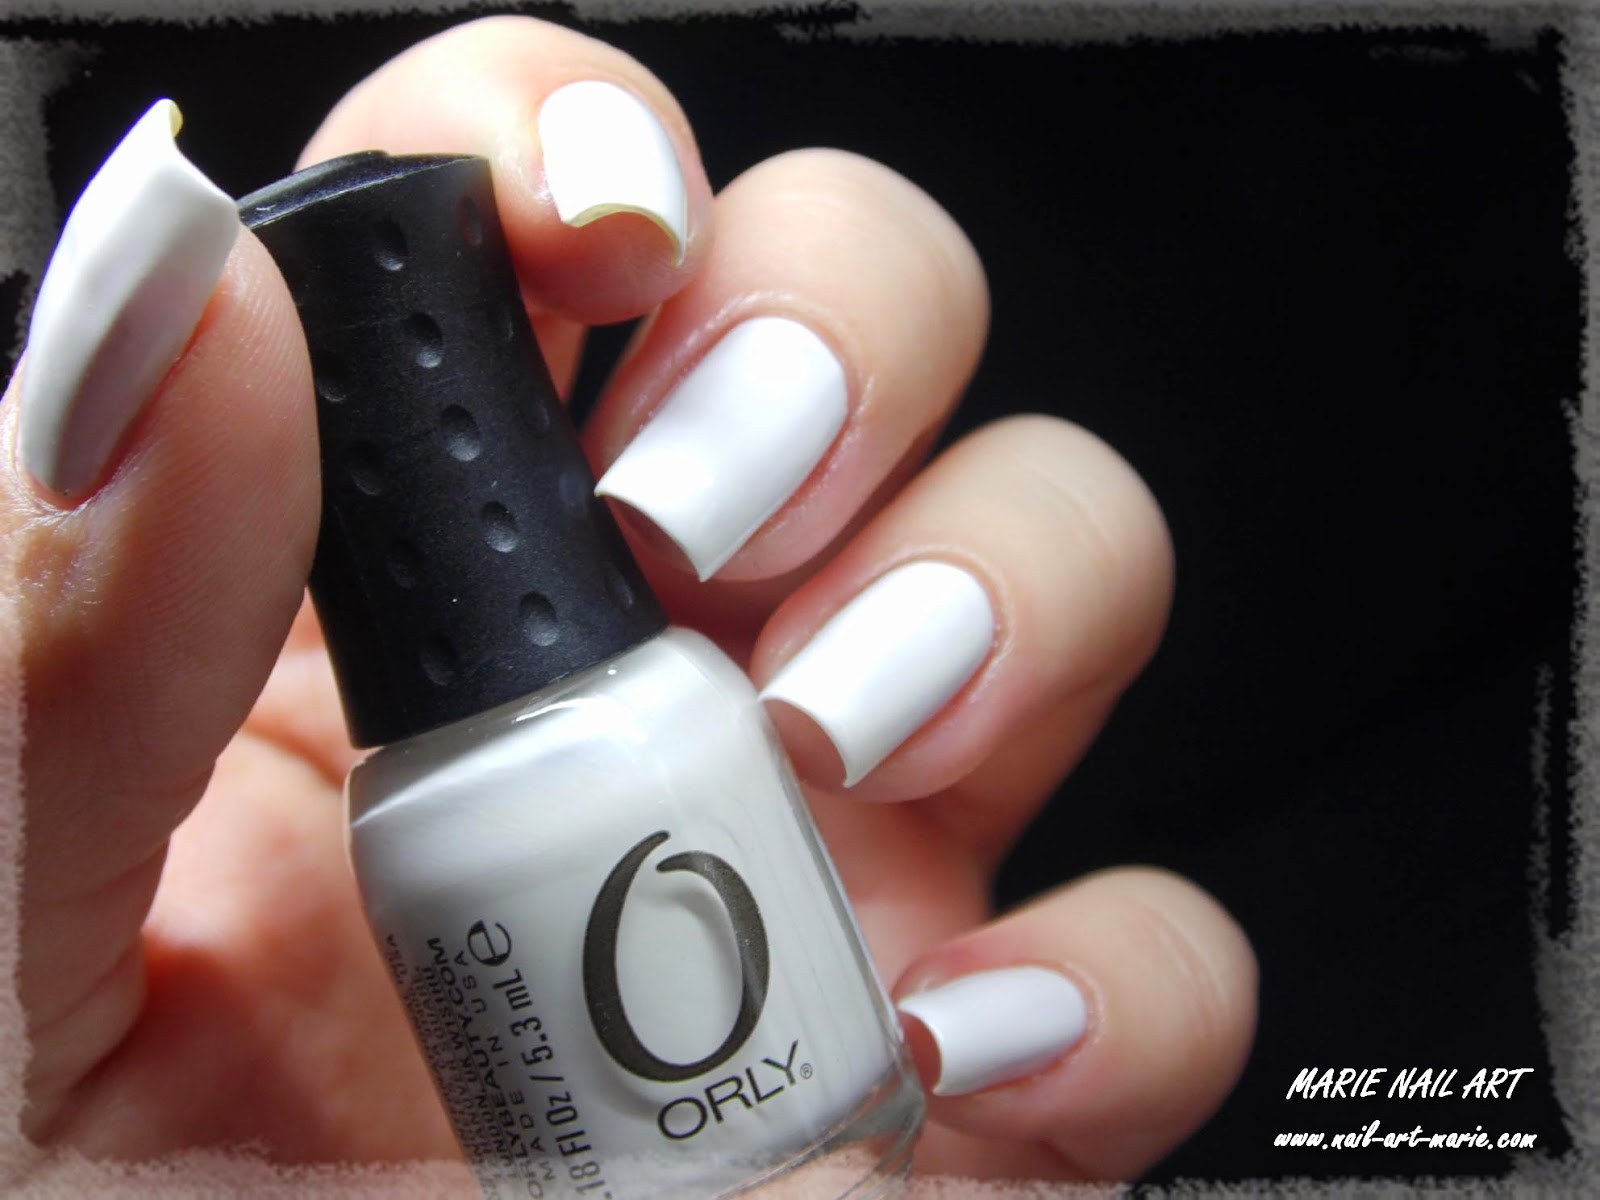 Orly Dayglow7